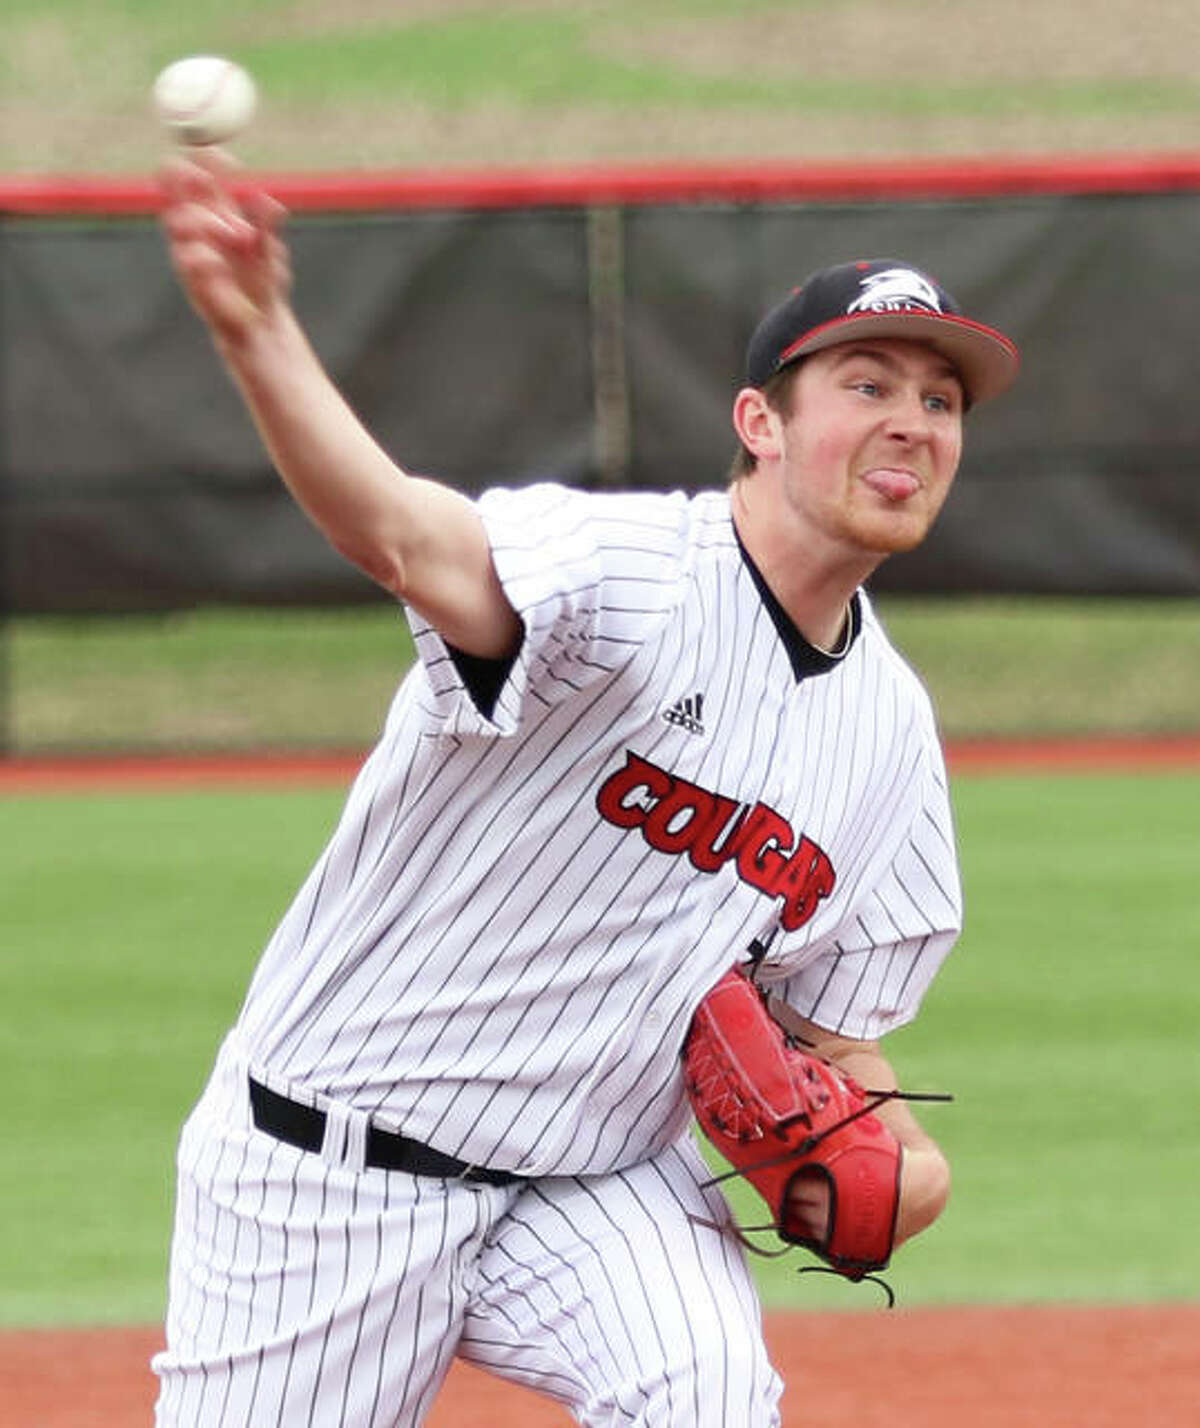 SIUE pitcher Collin Baumgartner, shown in his start last Friday in Edwardsville, was back on the mound Friday as the Cougars' starter at Morehead State. Baumgartner is a sophomore from Brighton.